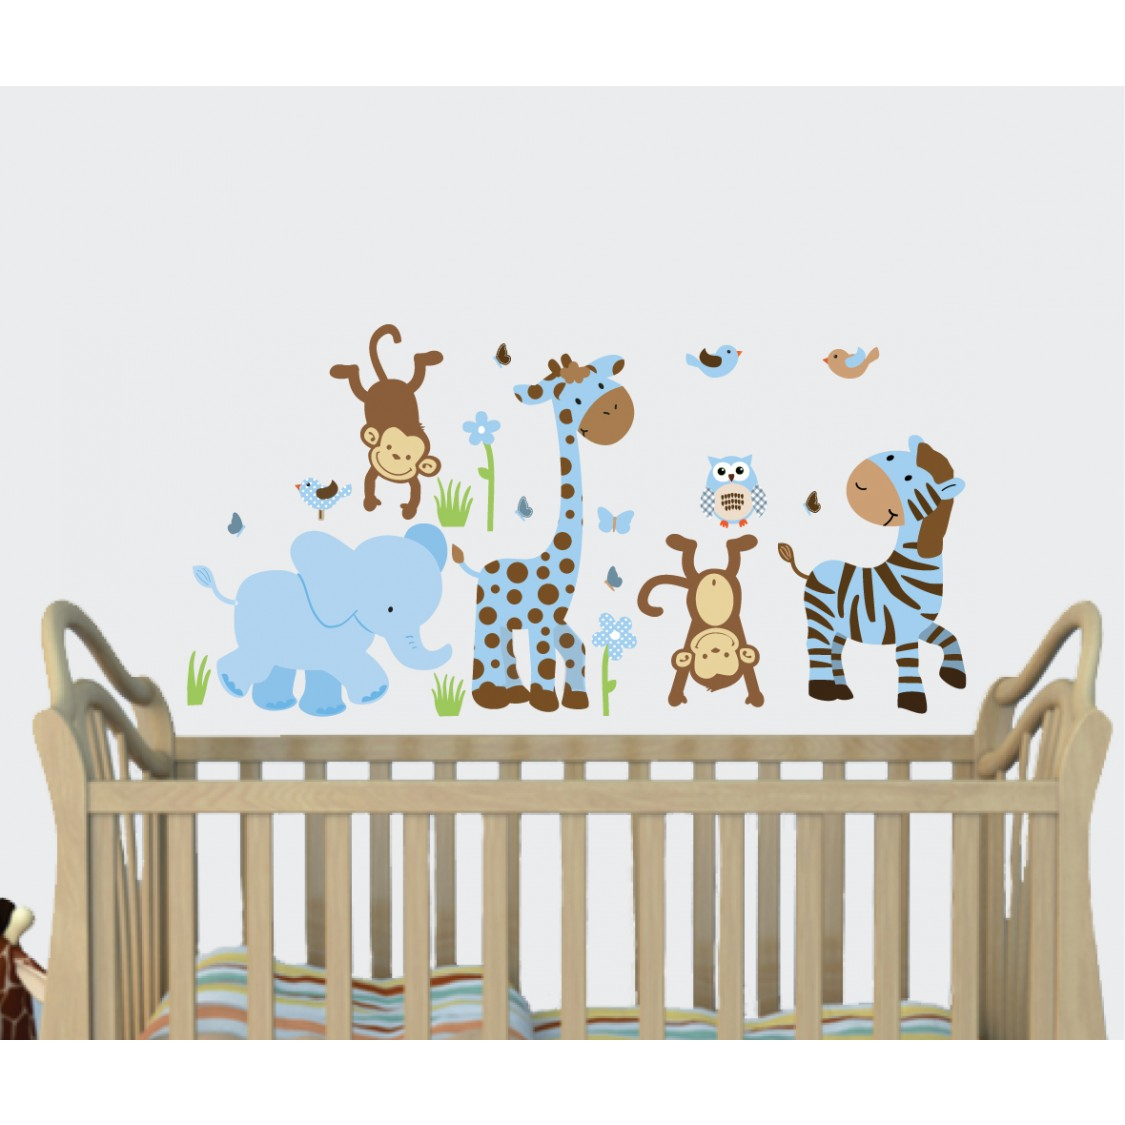 Blue & Brown Jungle Tree Wall Decal With Giraffe Wall Stickers For Nursery or Baby Room